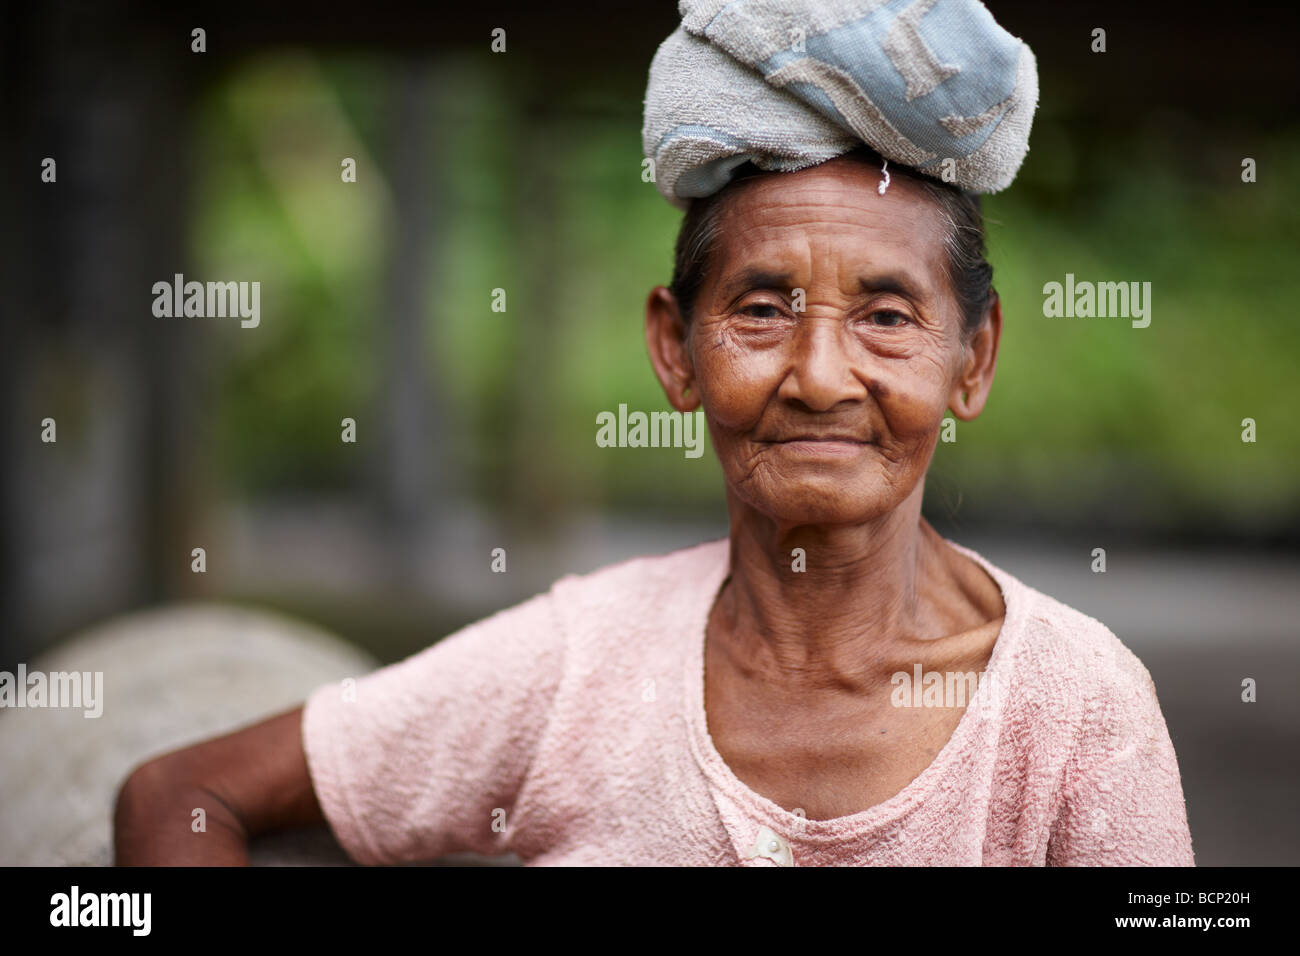 lady with towel on head for carrying loads, nr Tirtagangga, Bali, Indonesia - Stock Image